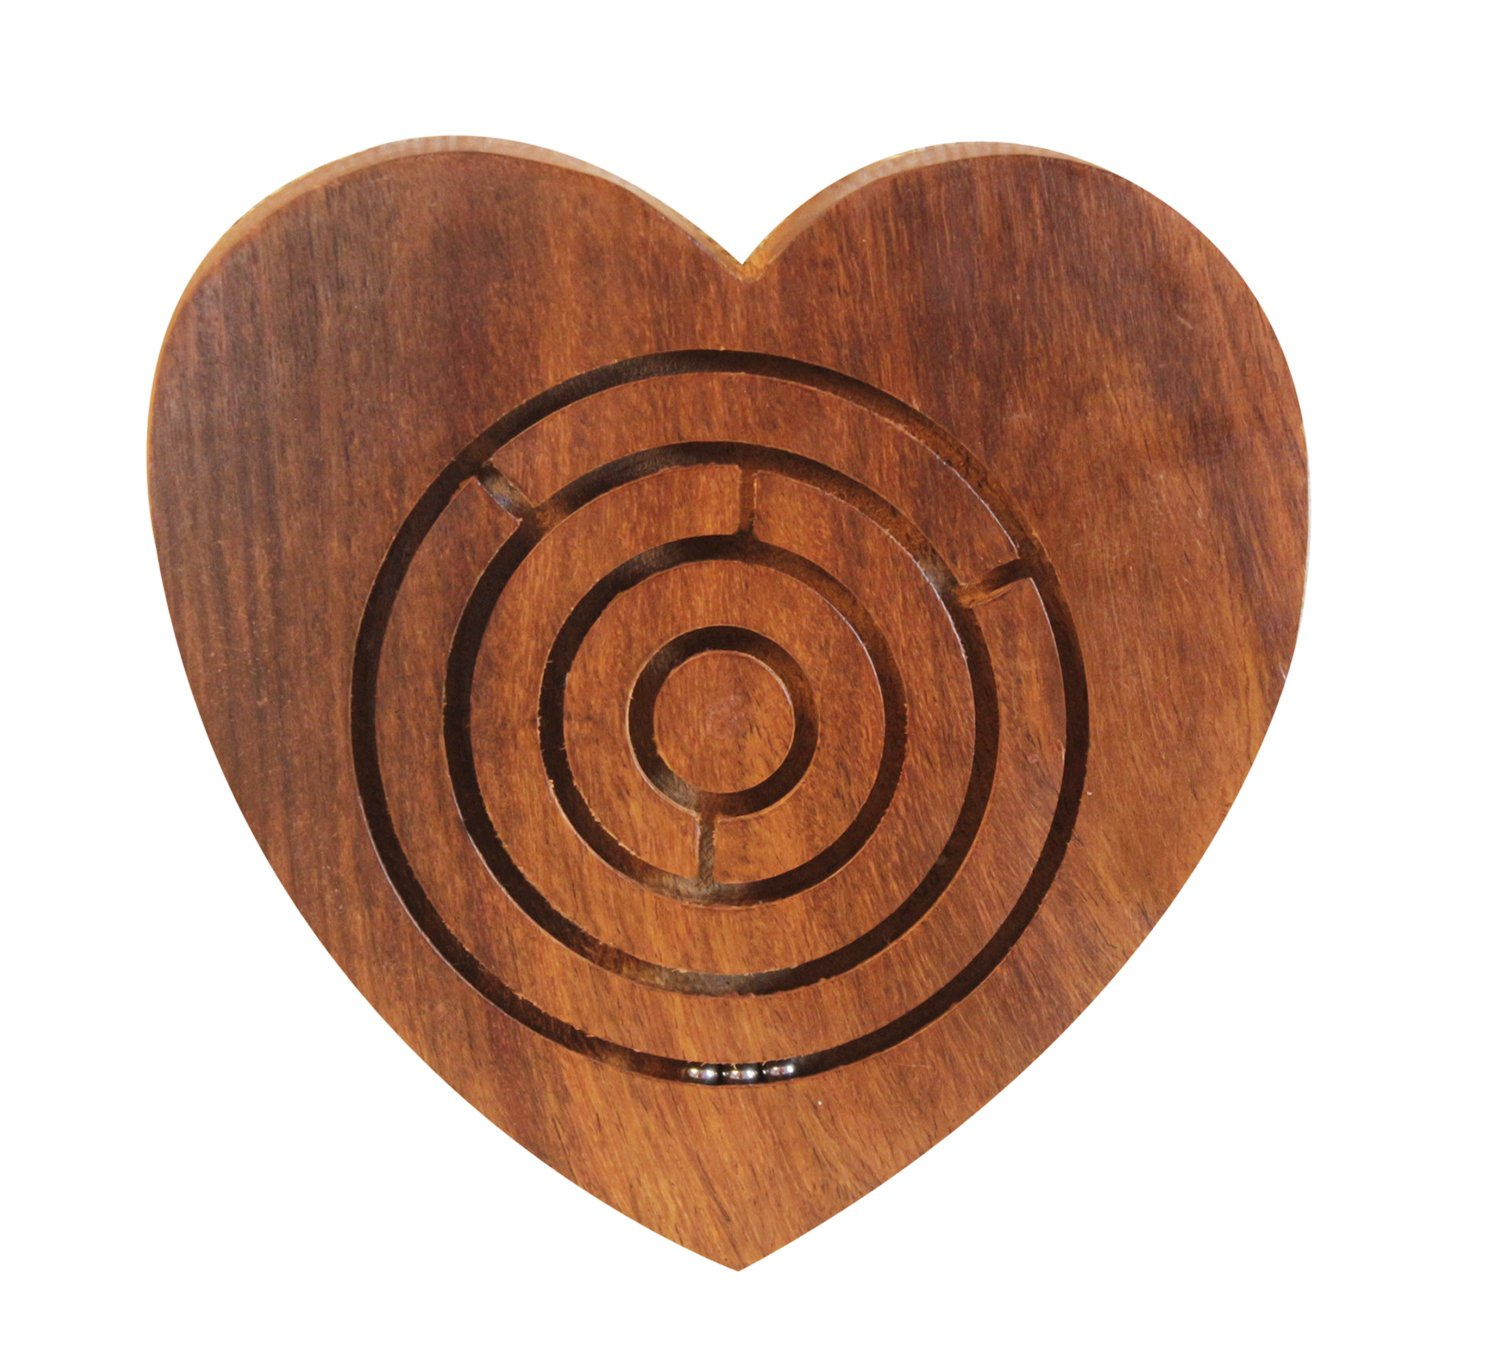 Handmade Wooden Labyrinth Puzzle Heart Shaped Ball in Maze Holiday Board Desk Game Travel Toy Brain Teaser for Kids Adults